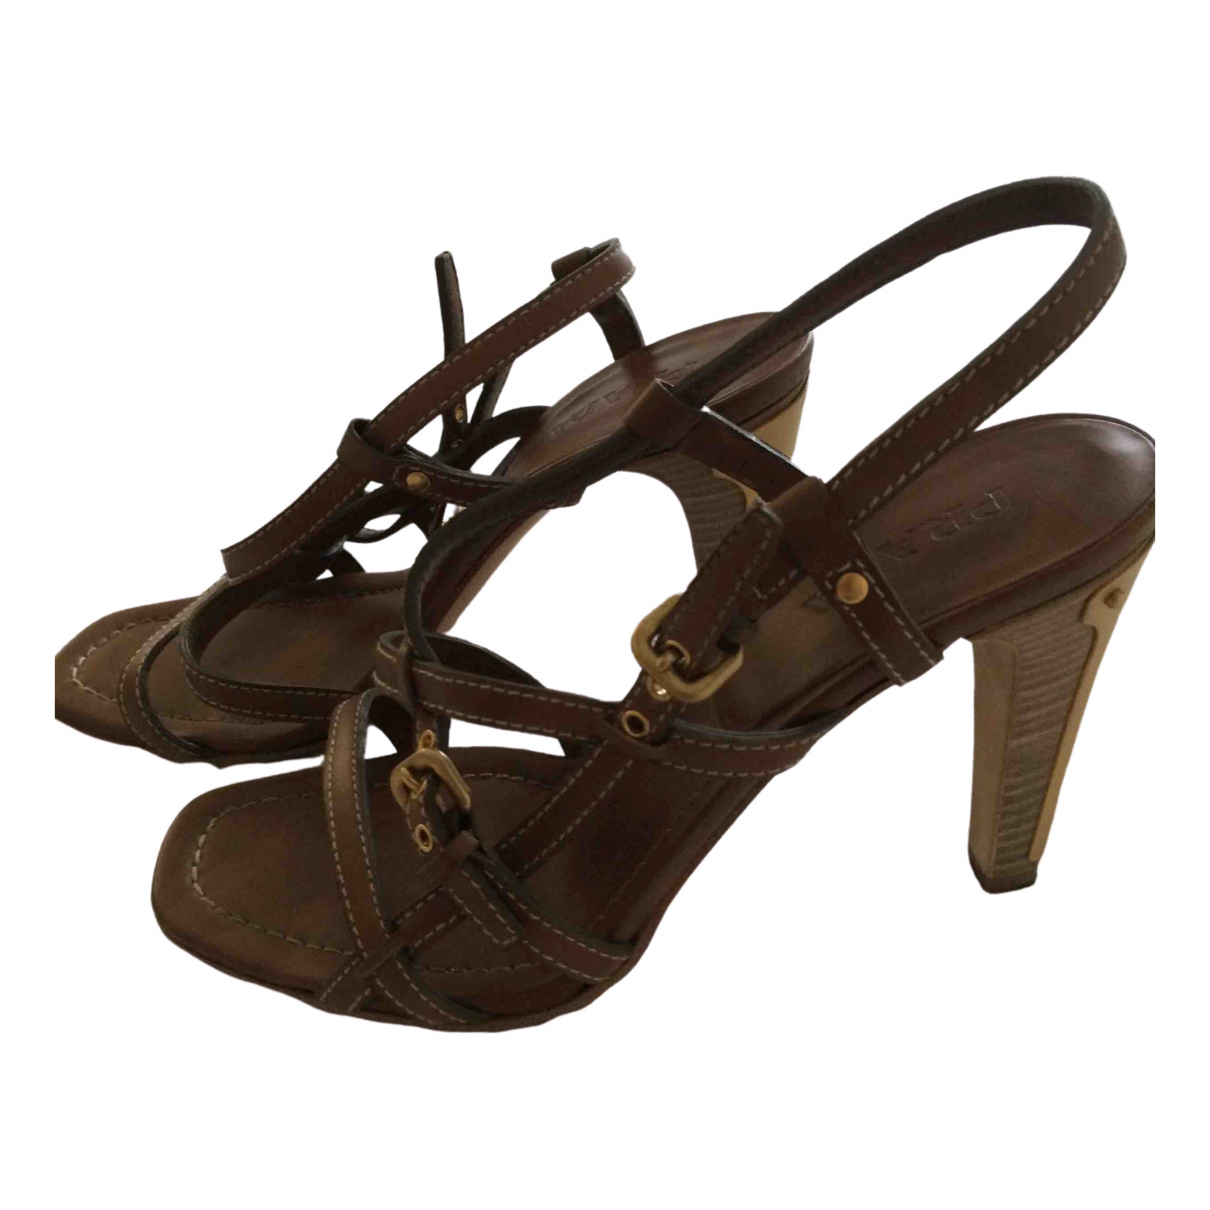 Prada \N Brown Leather Sandals for Women 38.5 IT